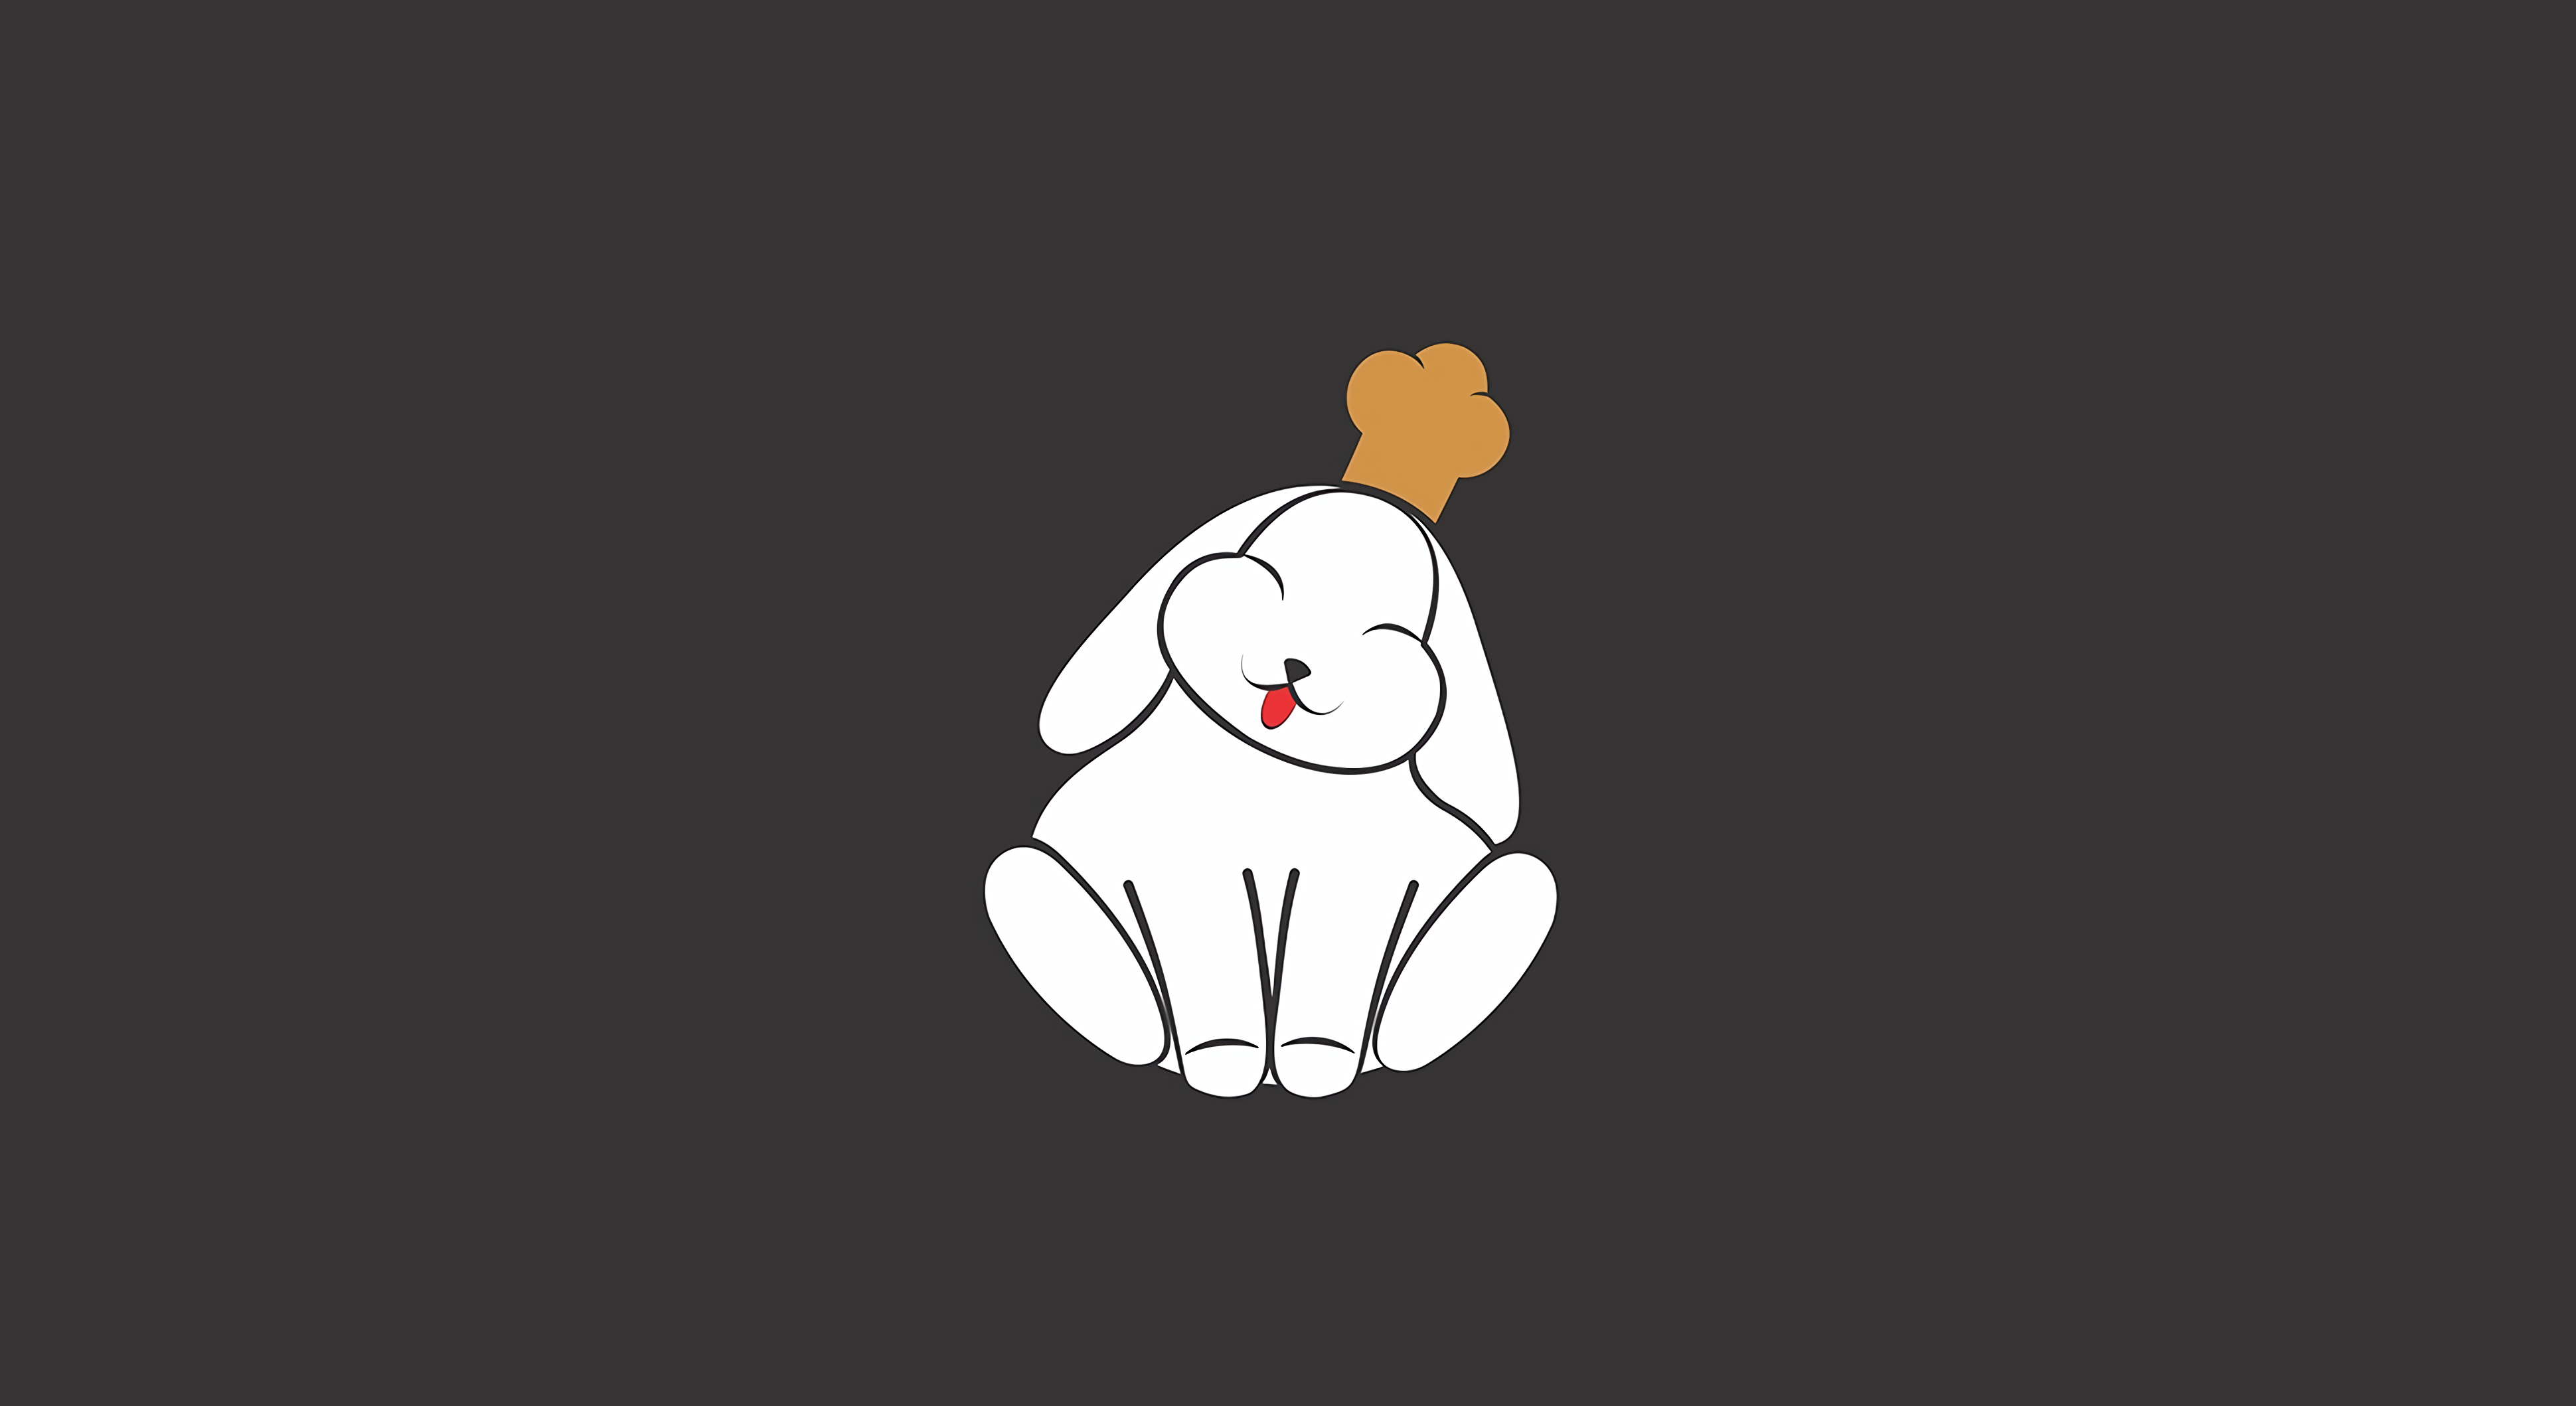 91571 download wallpaper Vector, Rabbit, Funny, Protruding Tongue, Tongue Stuck Out, Art screensavers and pictures for free